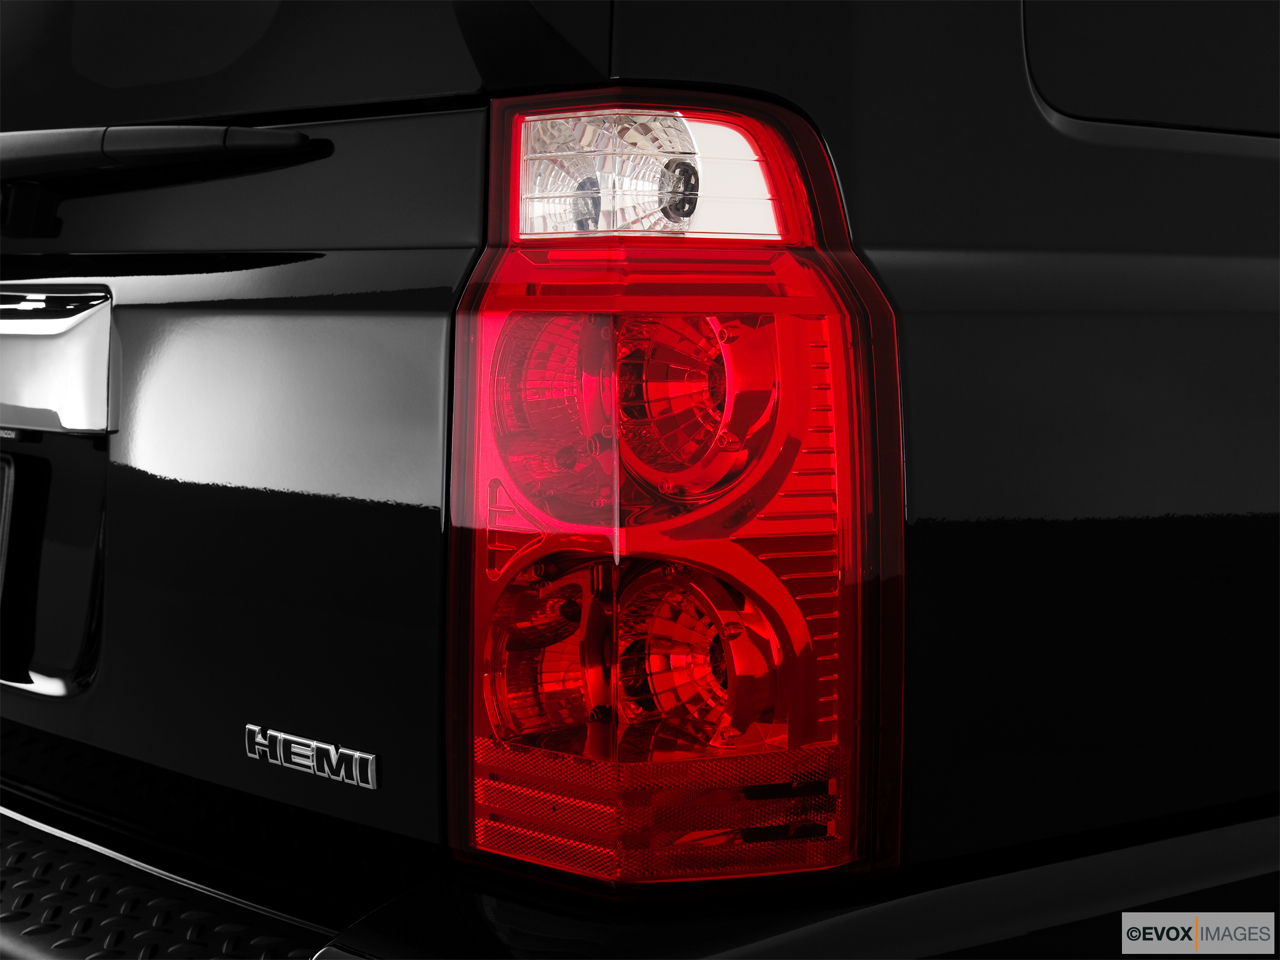 2010 Jeep Commander Limited Passenger Side Taillight.